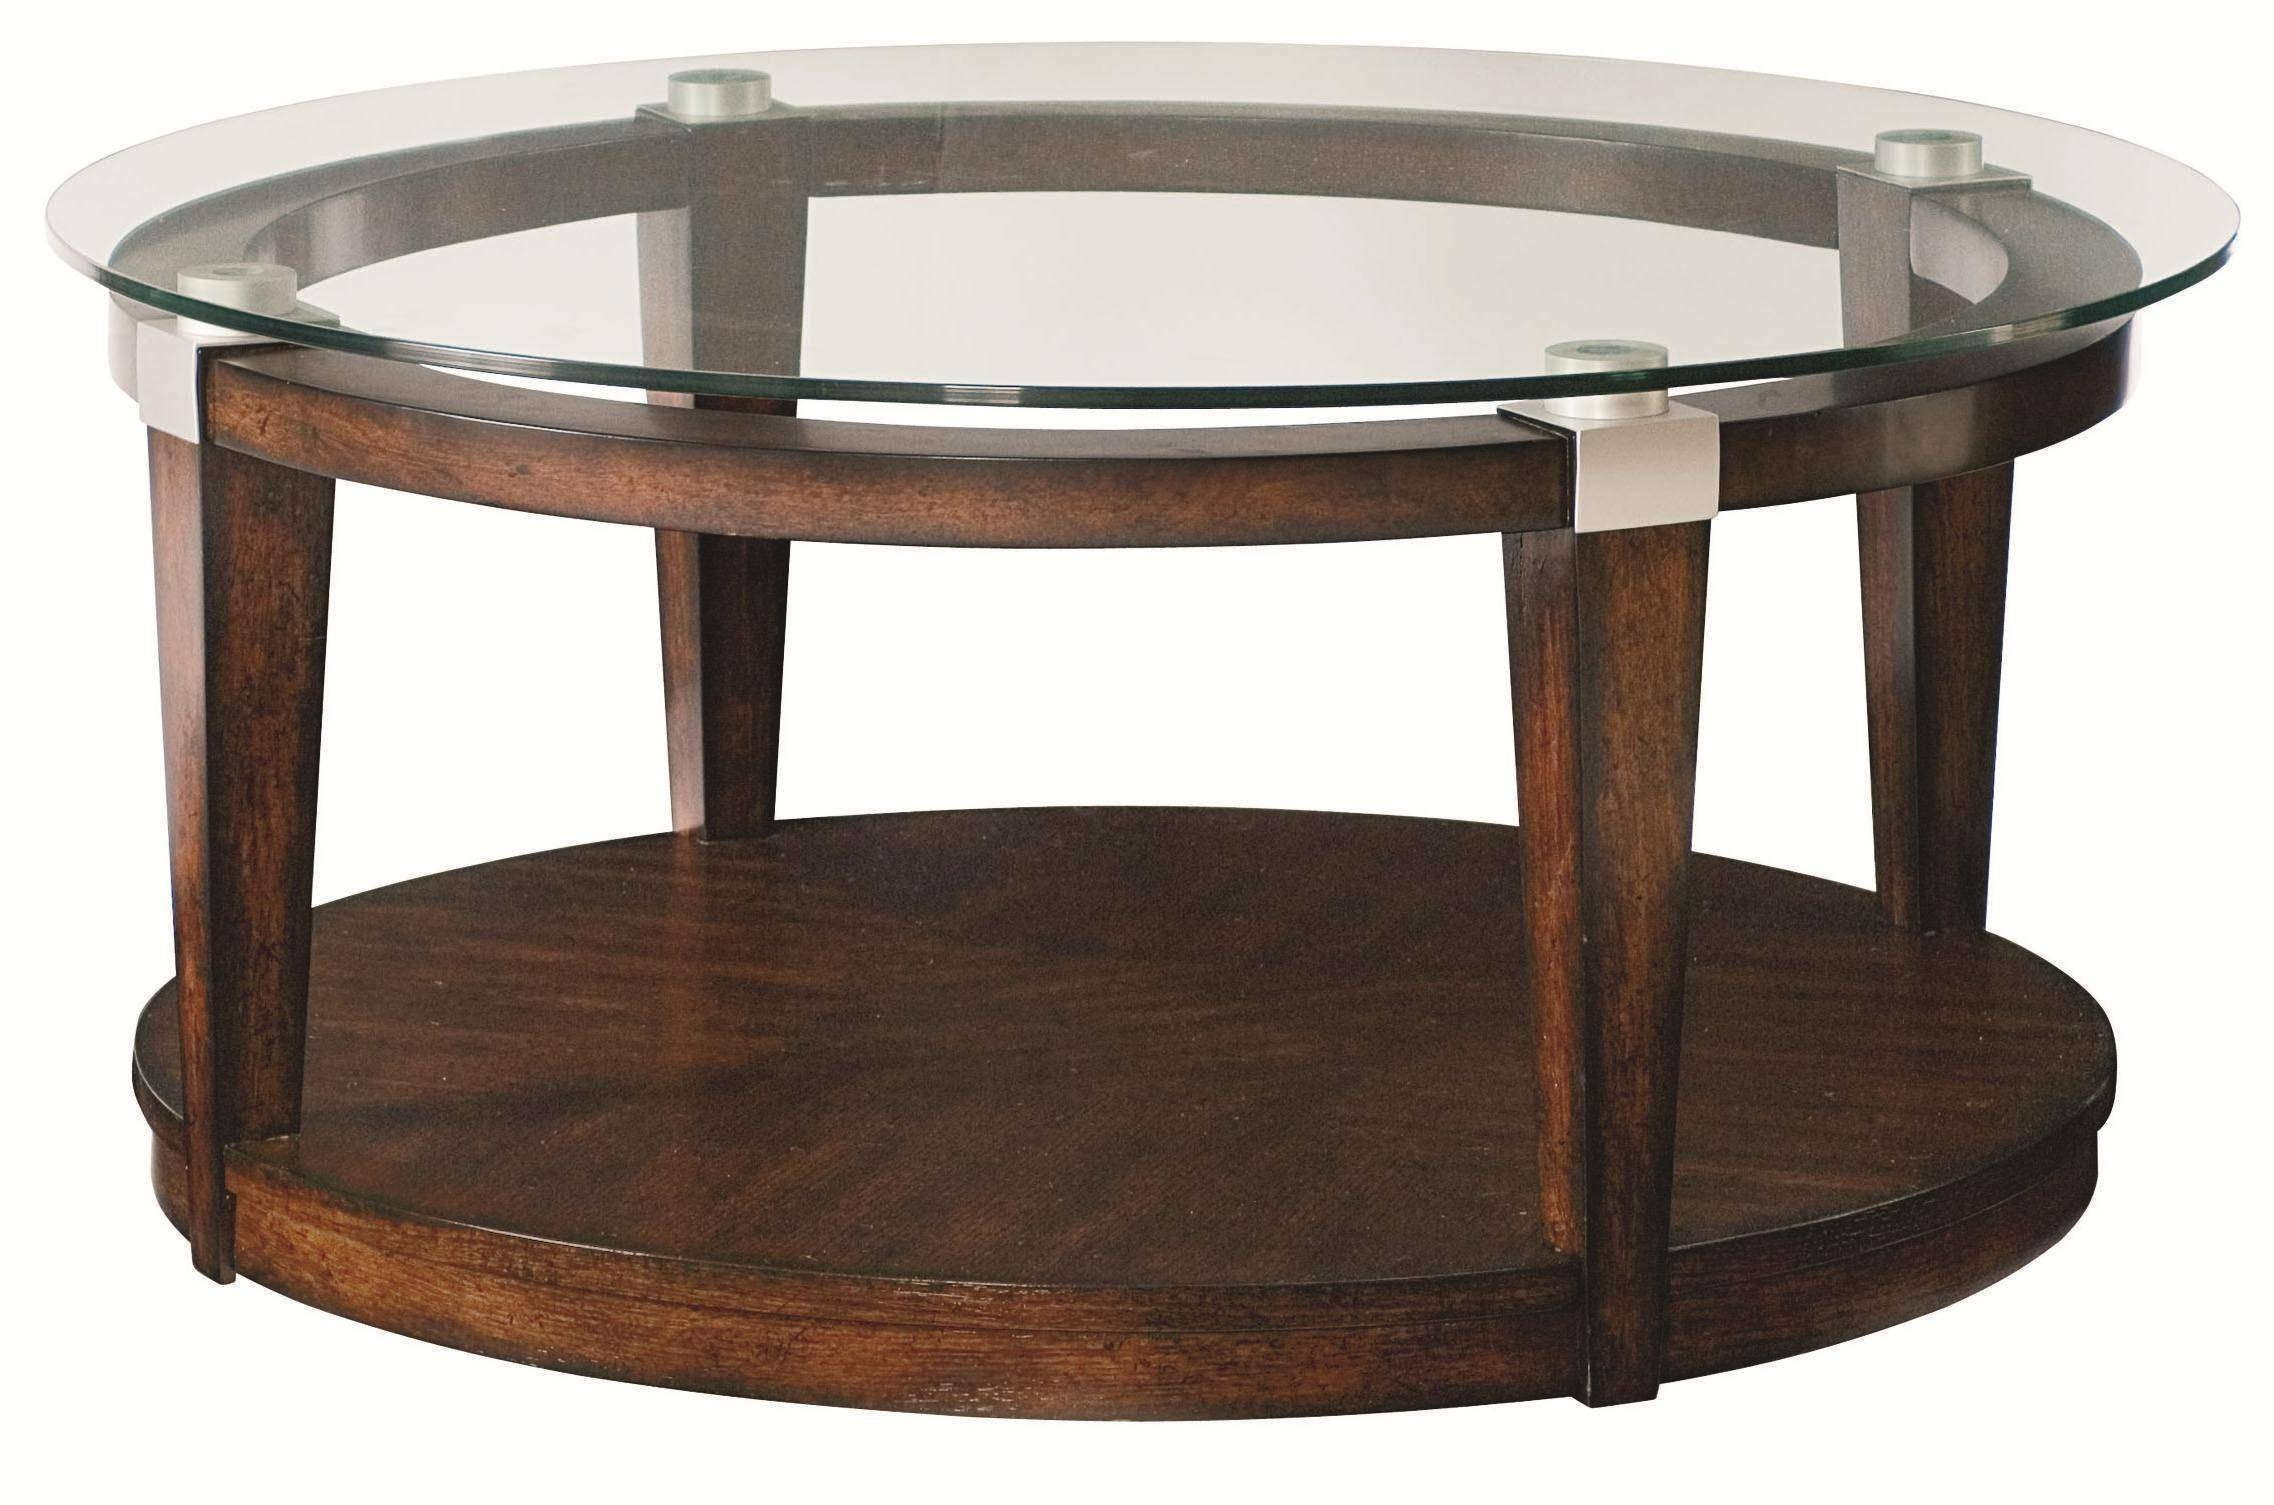 Round Glass Top Coffee Table With Wood Base View Here Coffee for Round Glass And Wood Coffee Tables (Image 20 of 30)